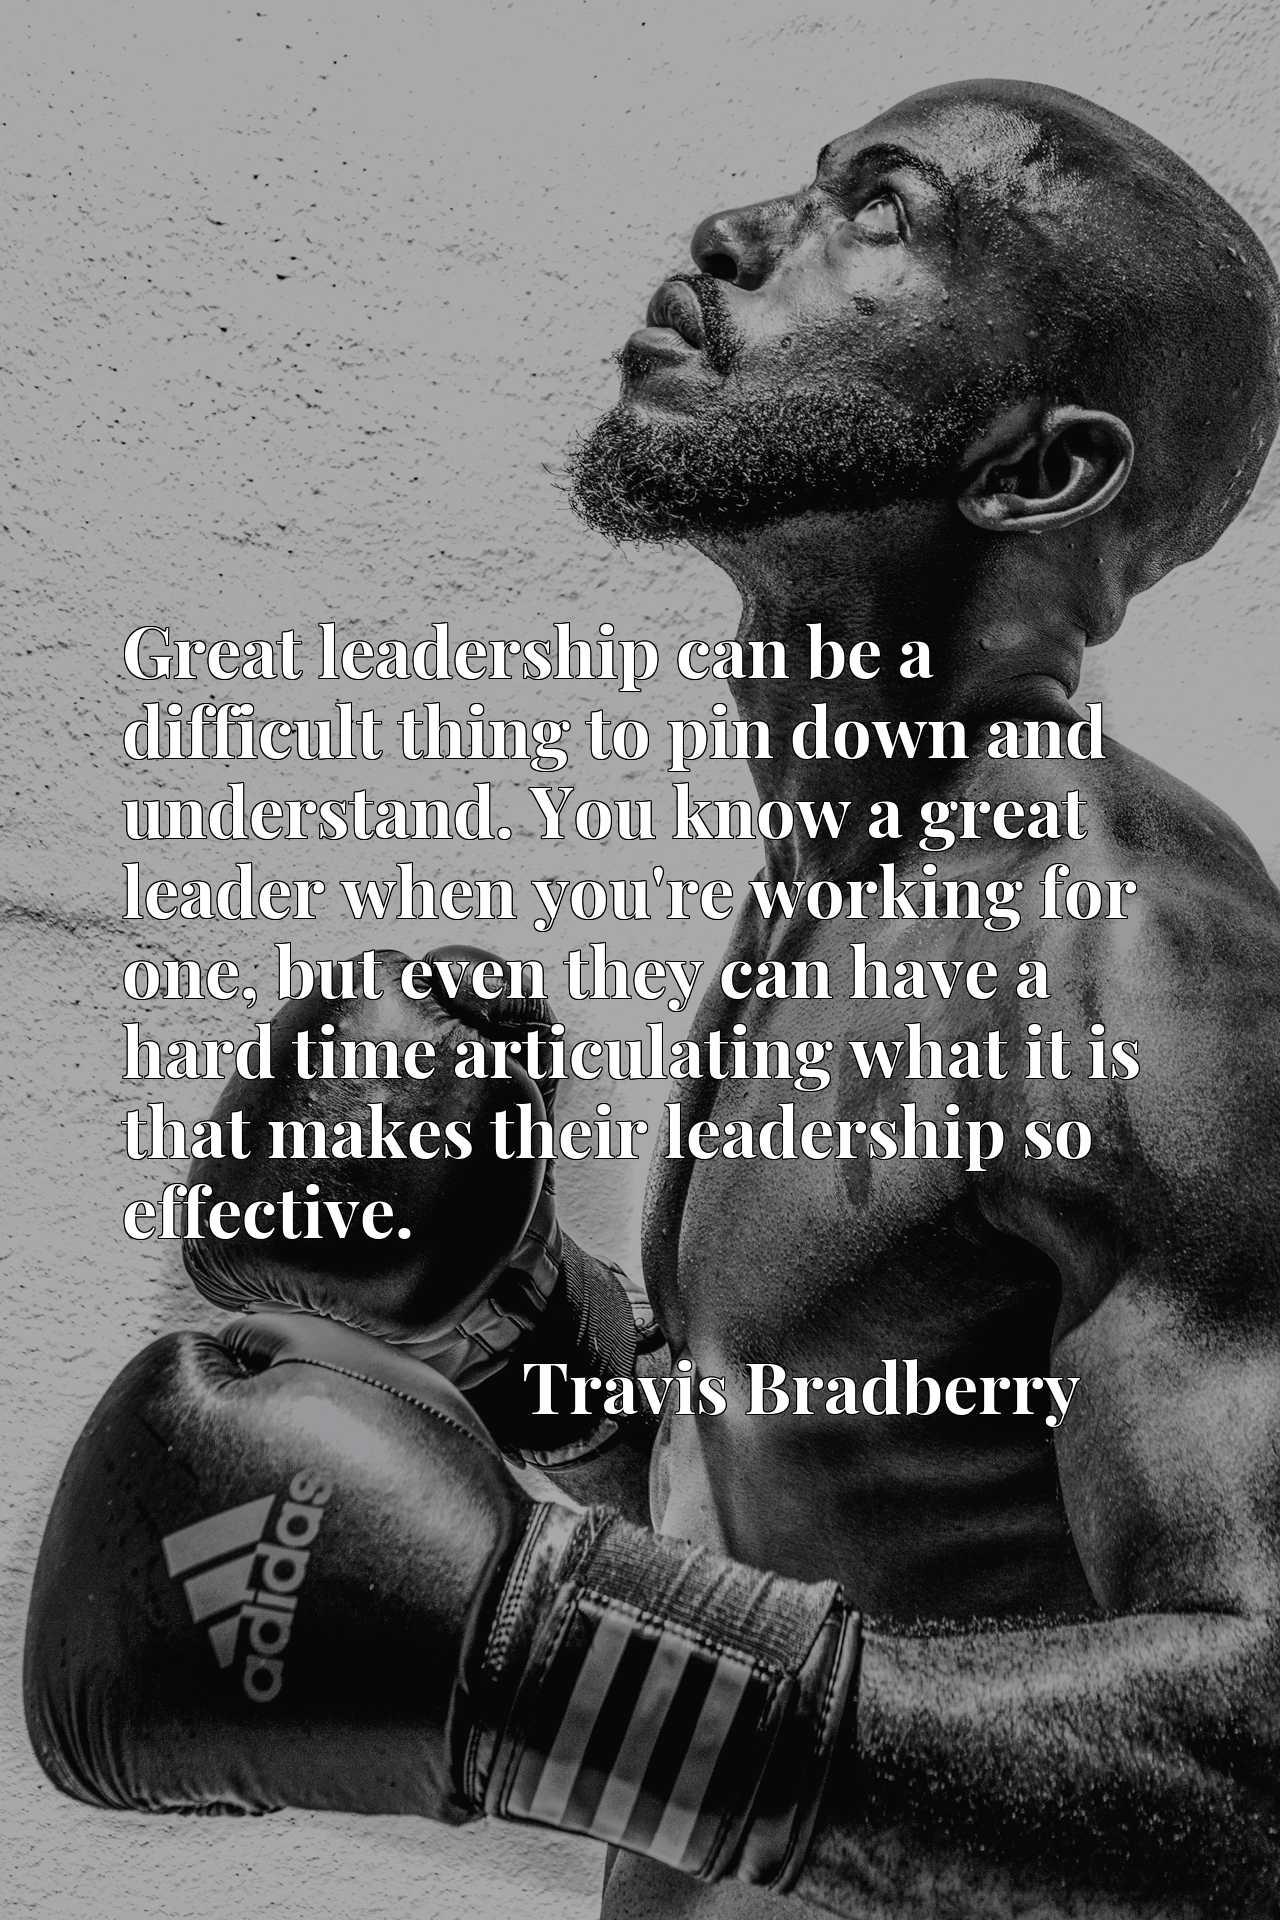 Quote Picture :Great leadership can be a difficult thing to pin down and understand. You know a great leader when you're working for one, but even they can have a hard time articulating what it is that makes their leadership so effective.